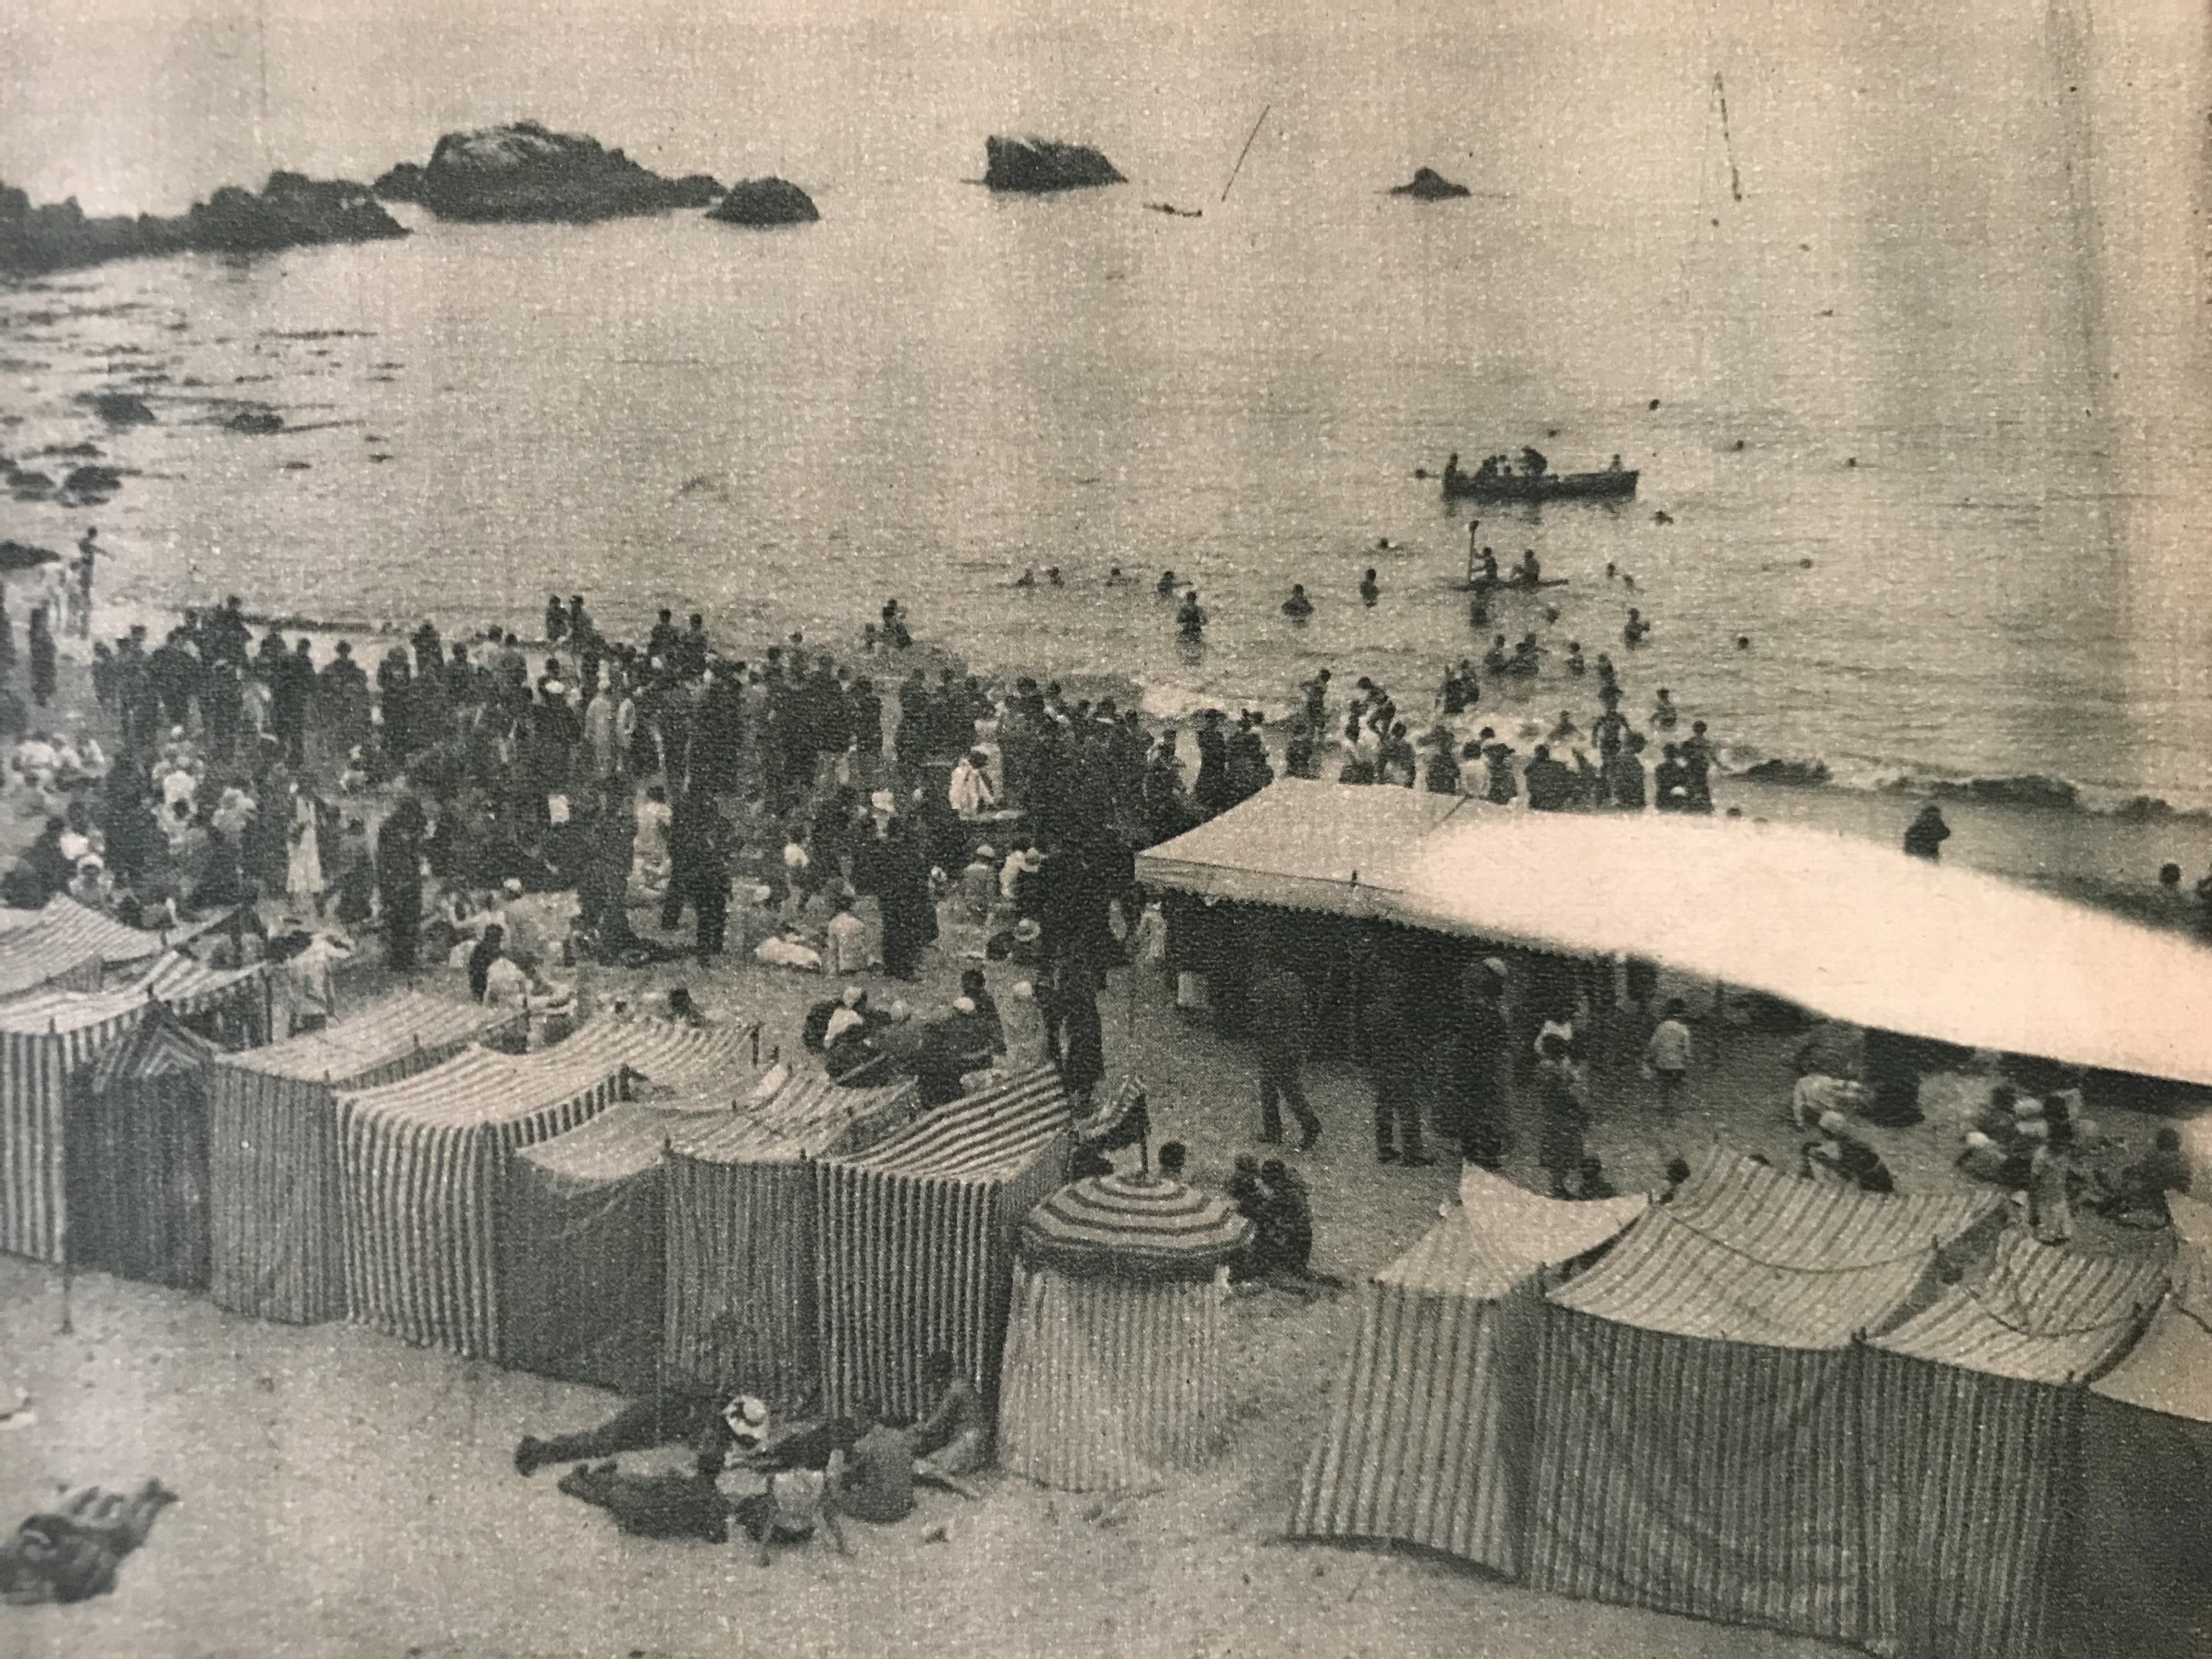 Enterreno - Fotos históricas de chile - fotos antiguas de Chile - Playa Las Salinas, 1932